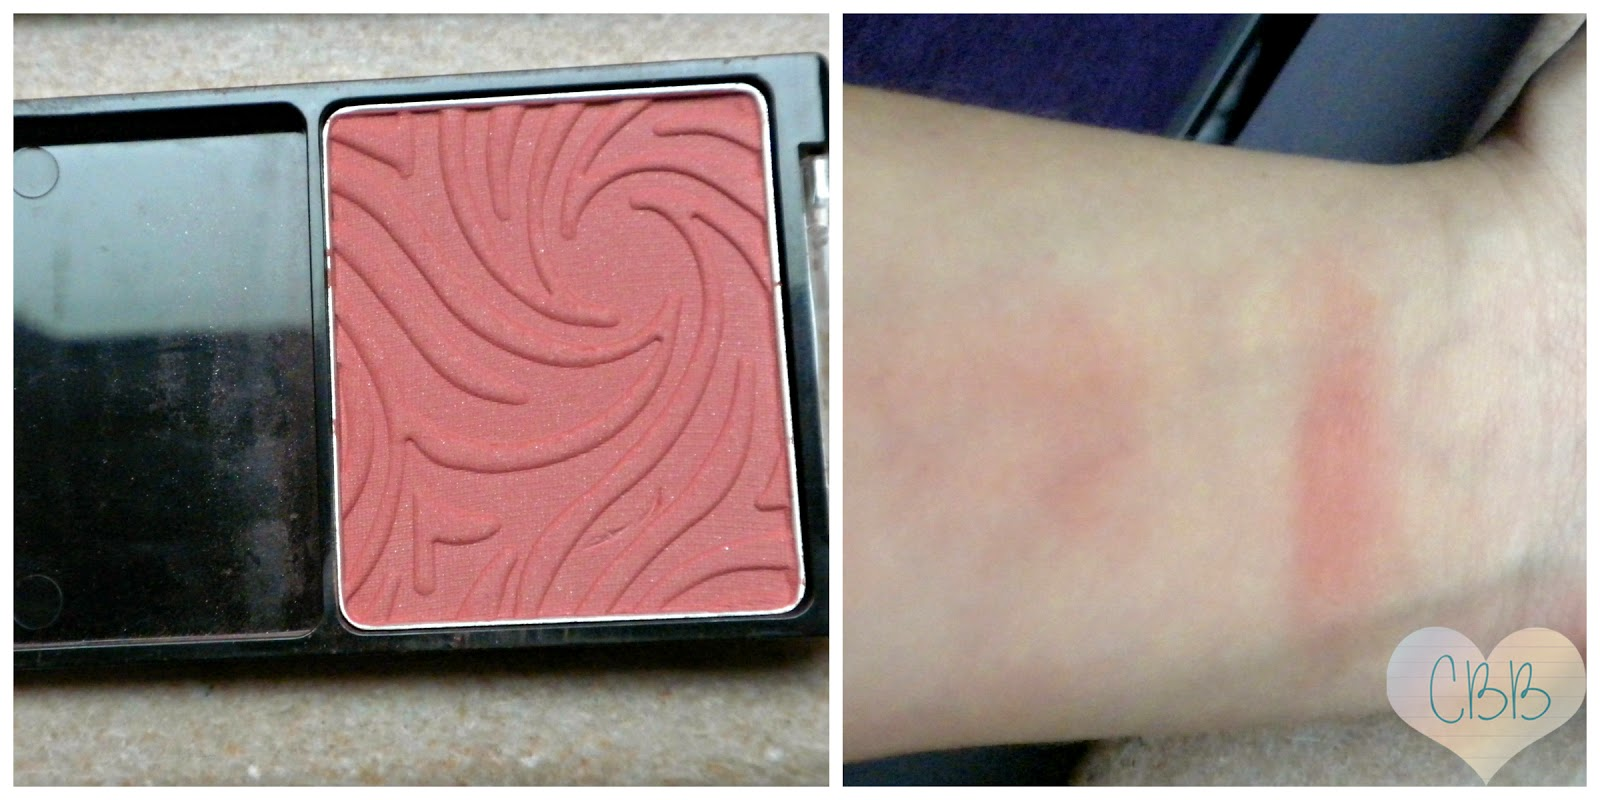 Powder Blush - WET N WILD Color Icon Blusher in Mellow Wine ($3 for .14oz)